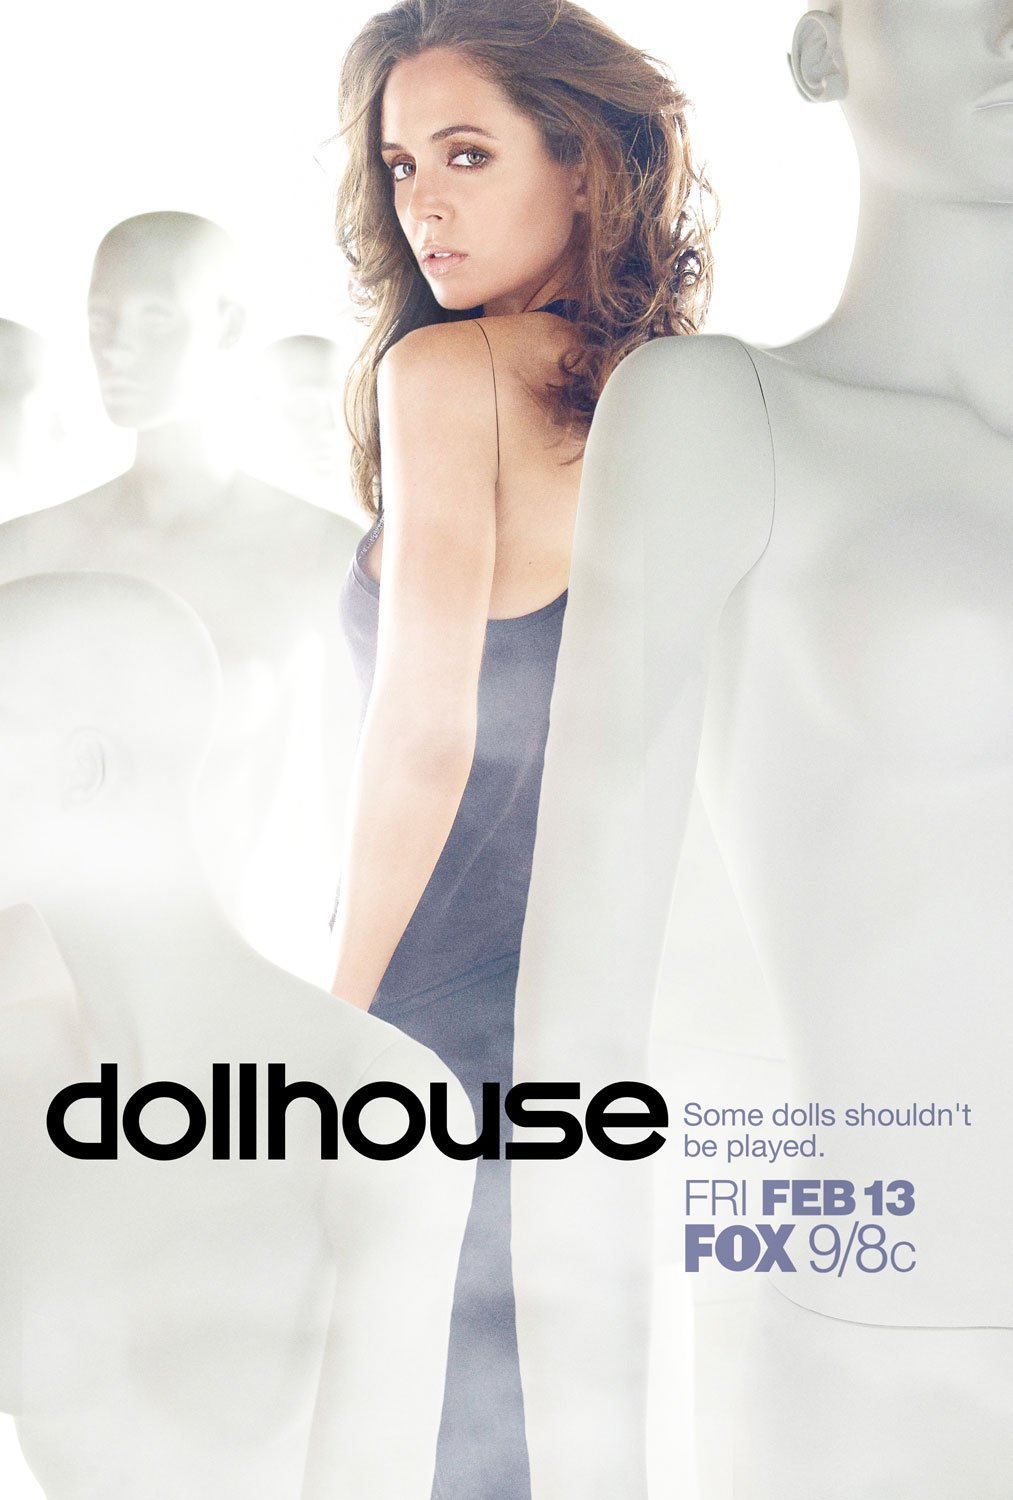 Dollhouse Fox Wiki Fandom Powered By Wikia